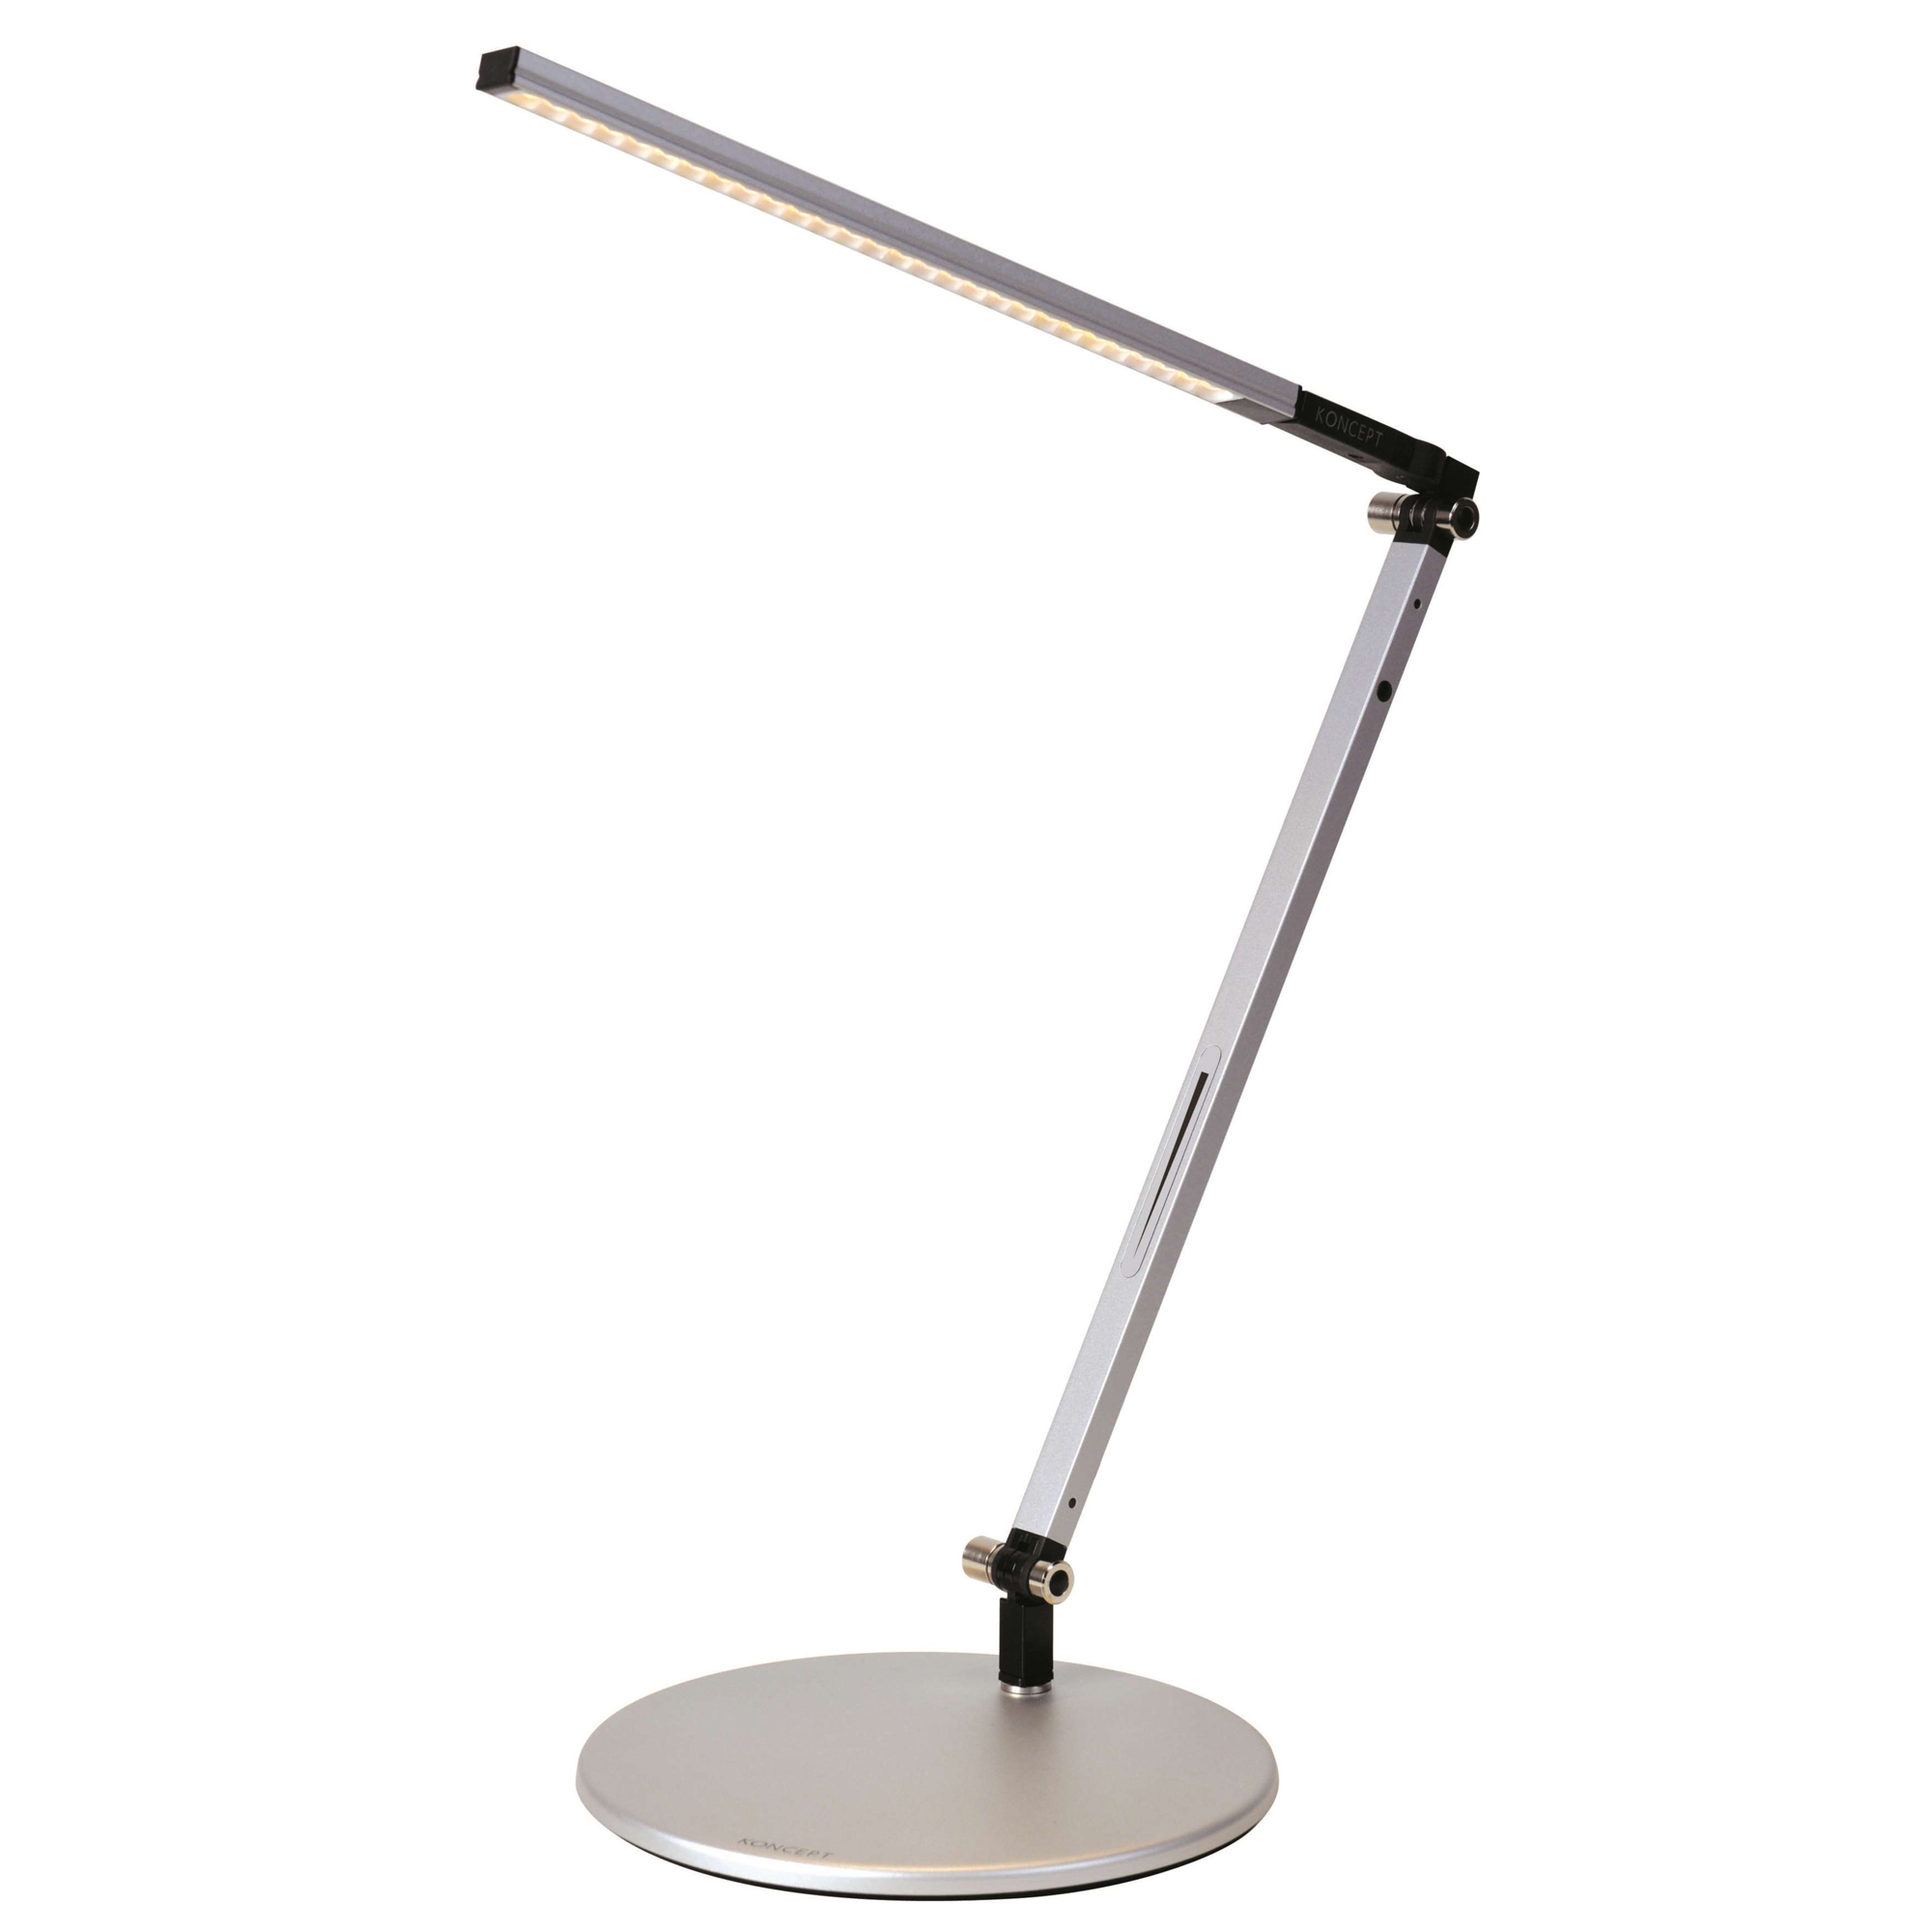 Desk Lamp Z Bar Solo Mini Led Desk Lamp By Koncept Lighting Ar1100 Wd Sil Dsk